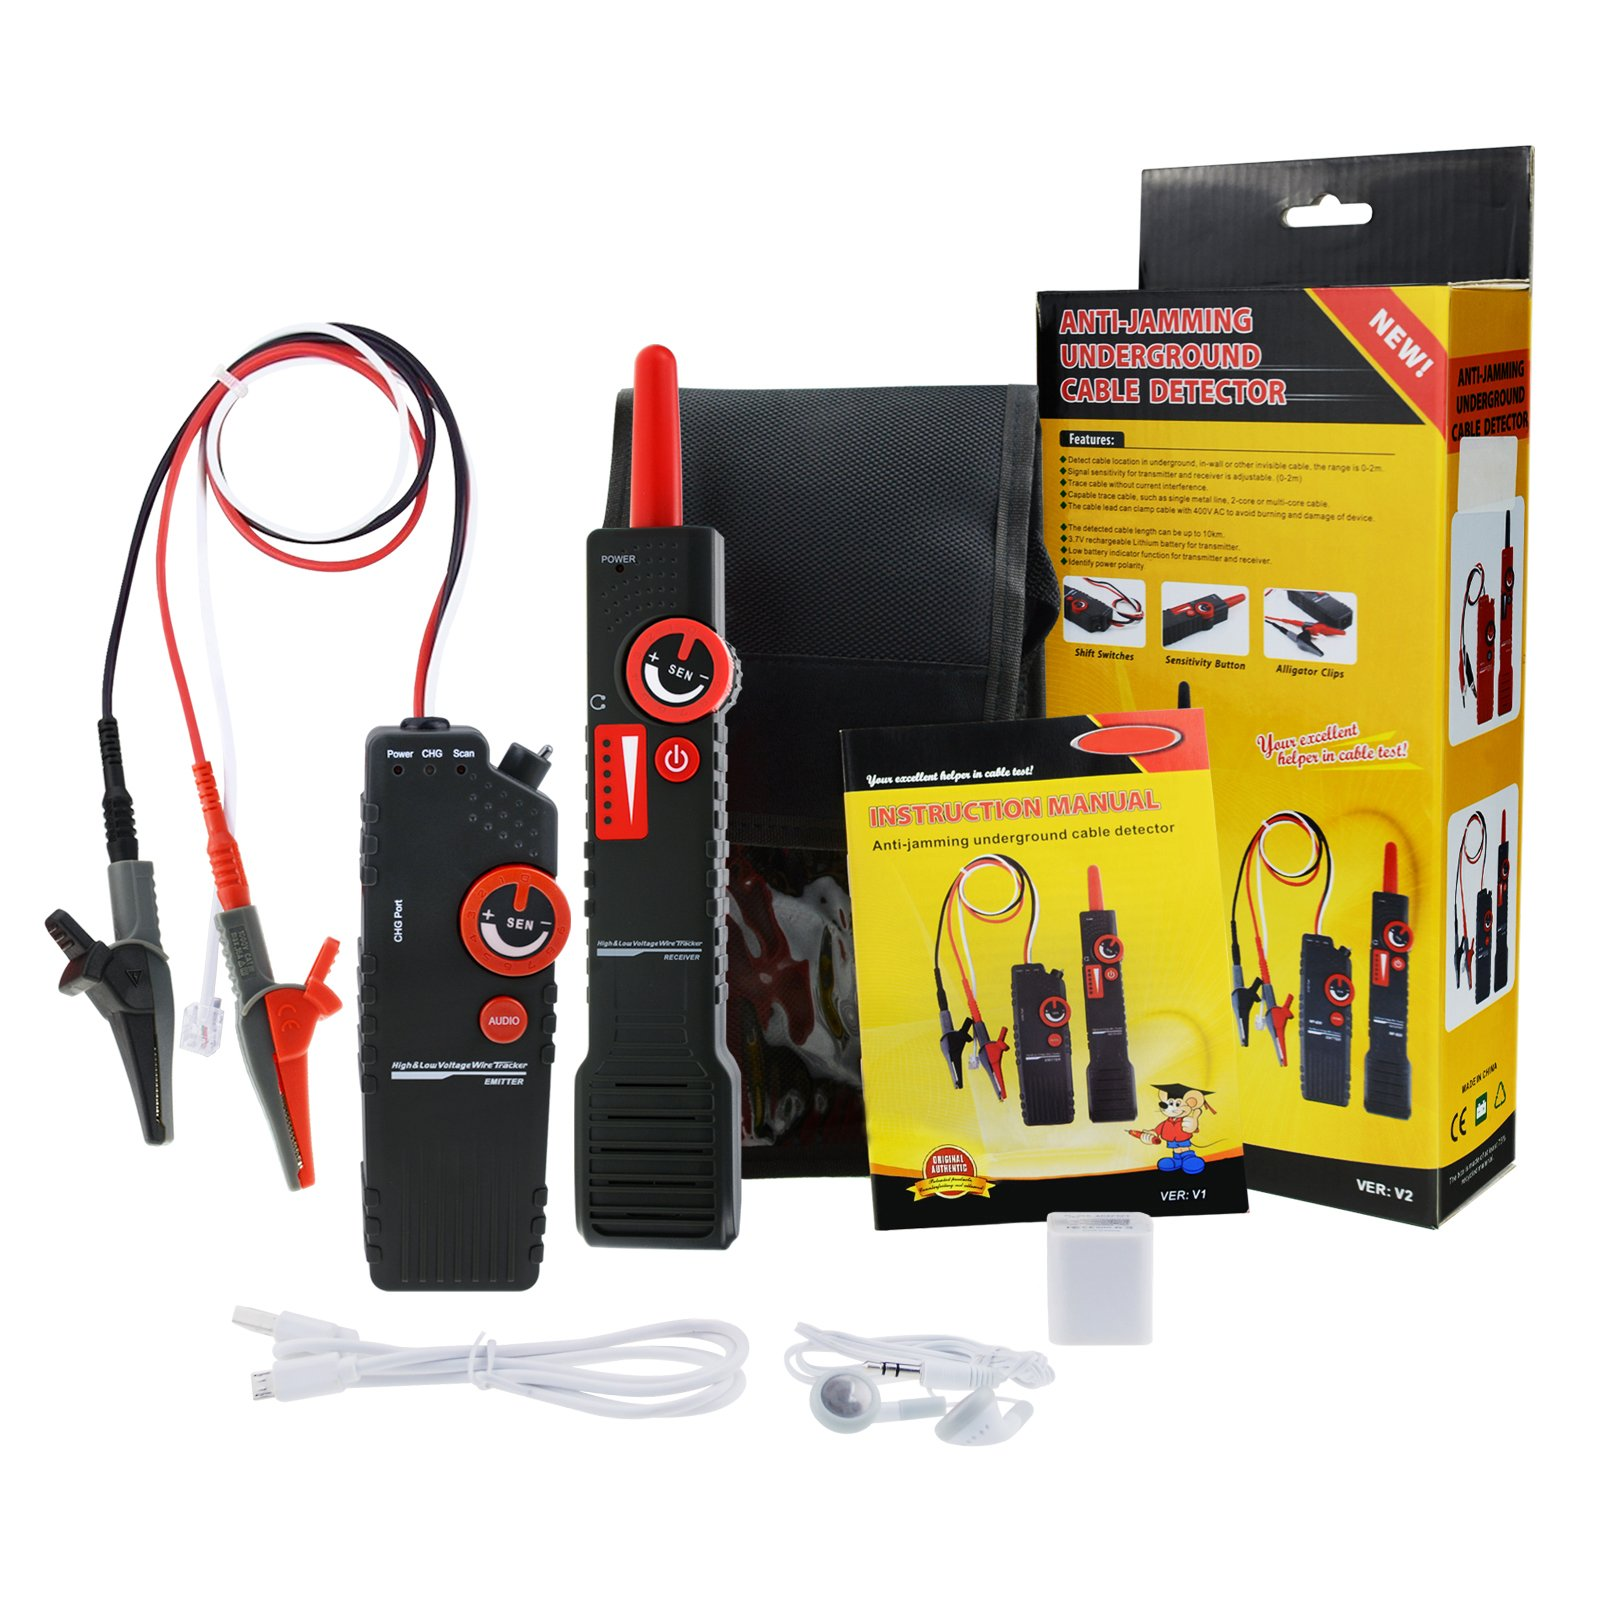 Network Cable Tracker Detector Wire Locator Coax Bnc Tester With Tracing Wiring Behind Walls This Low High Voltage Anti Jamming Underground Is Mainly Used To Detect Location In Inside Wall Ceiling Flooring And